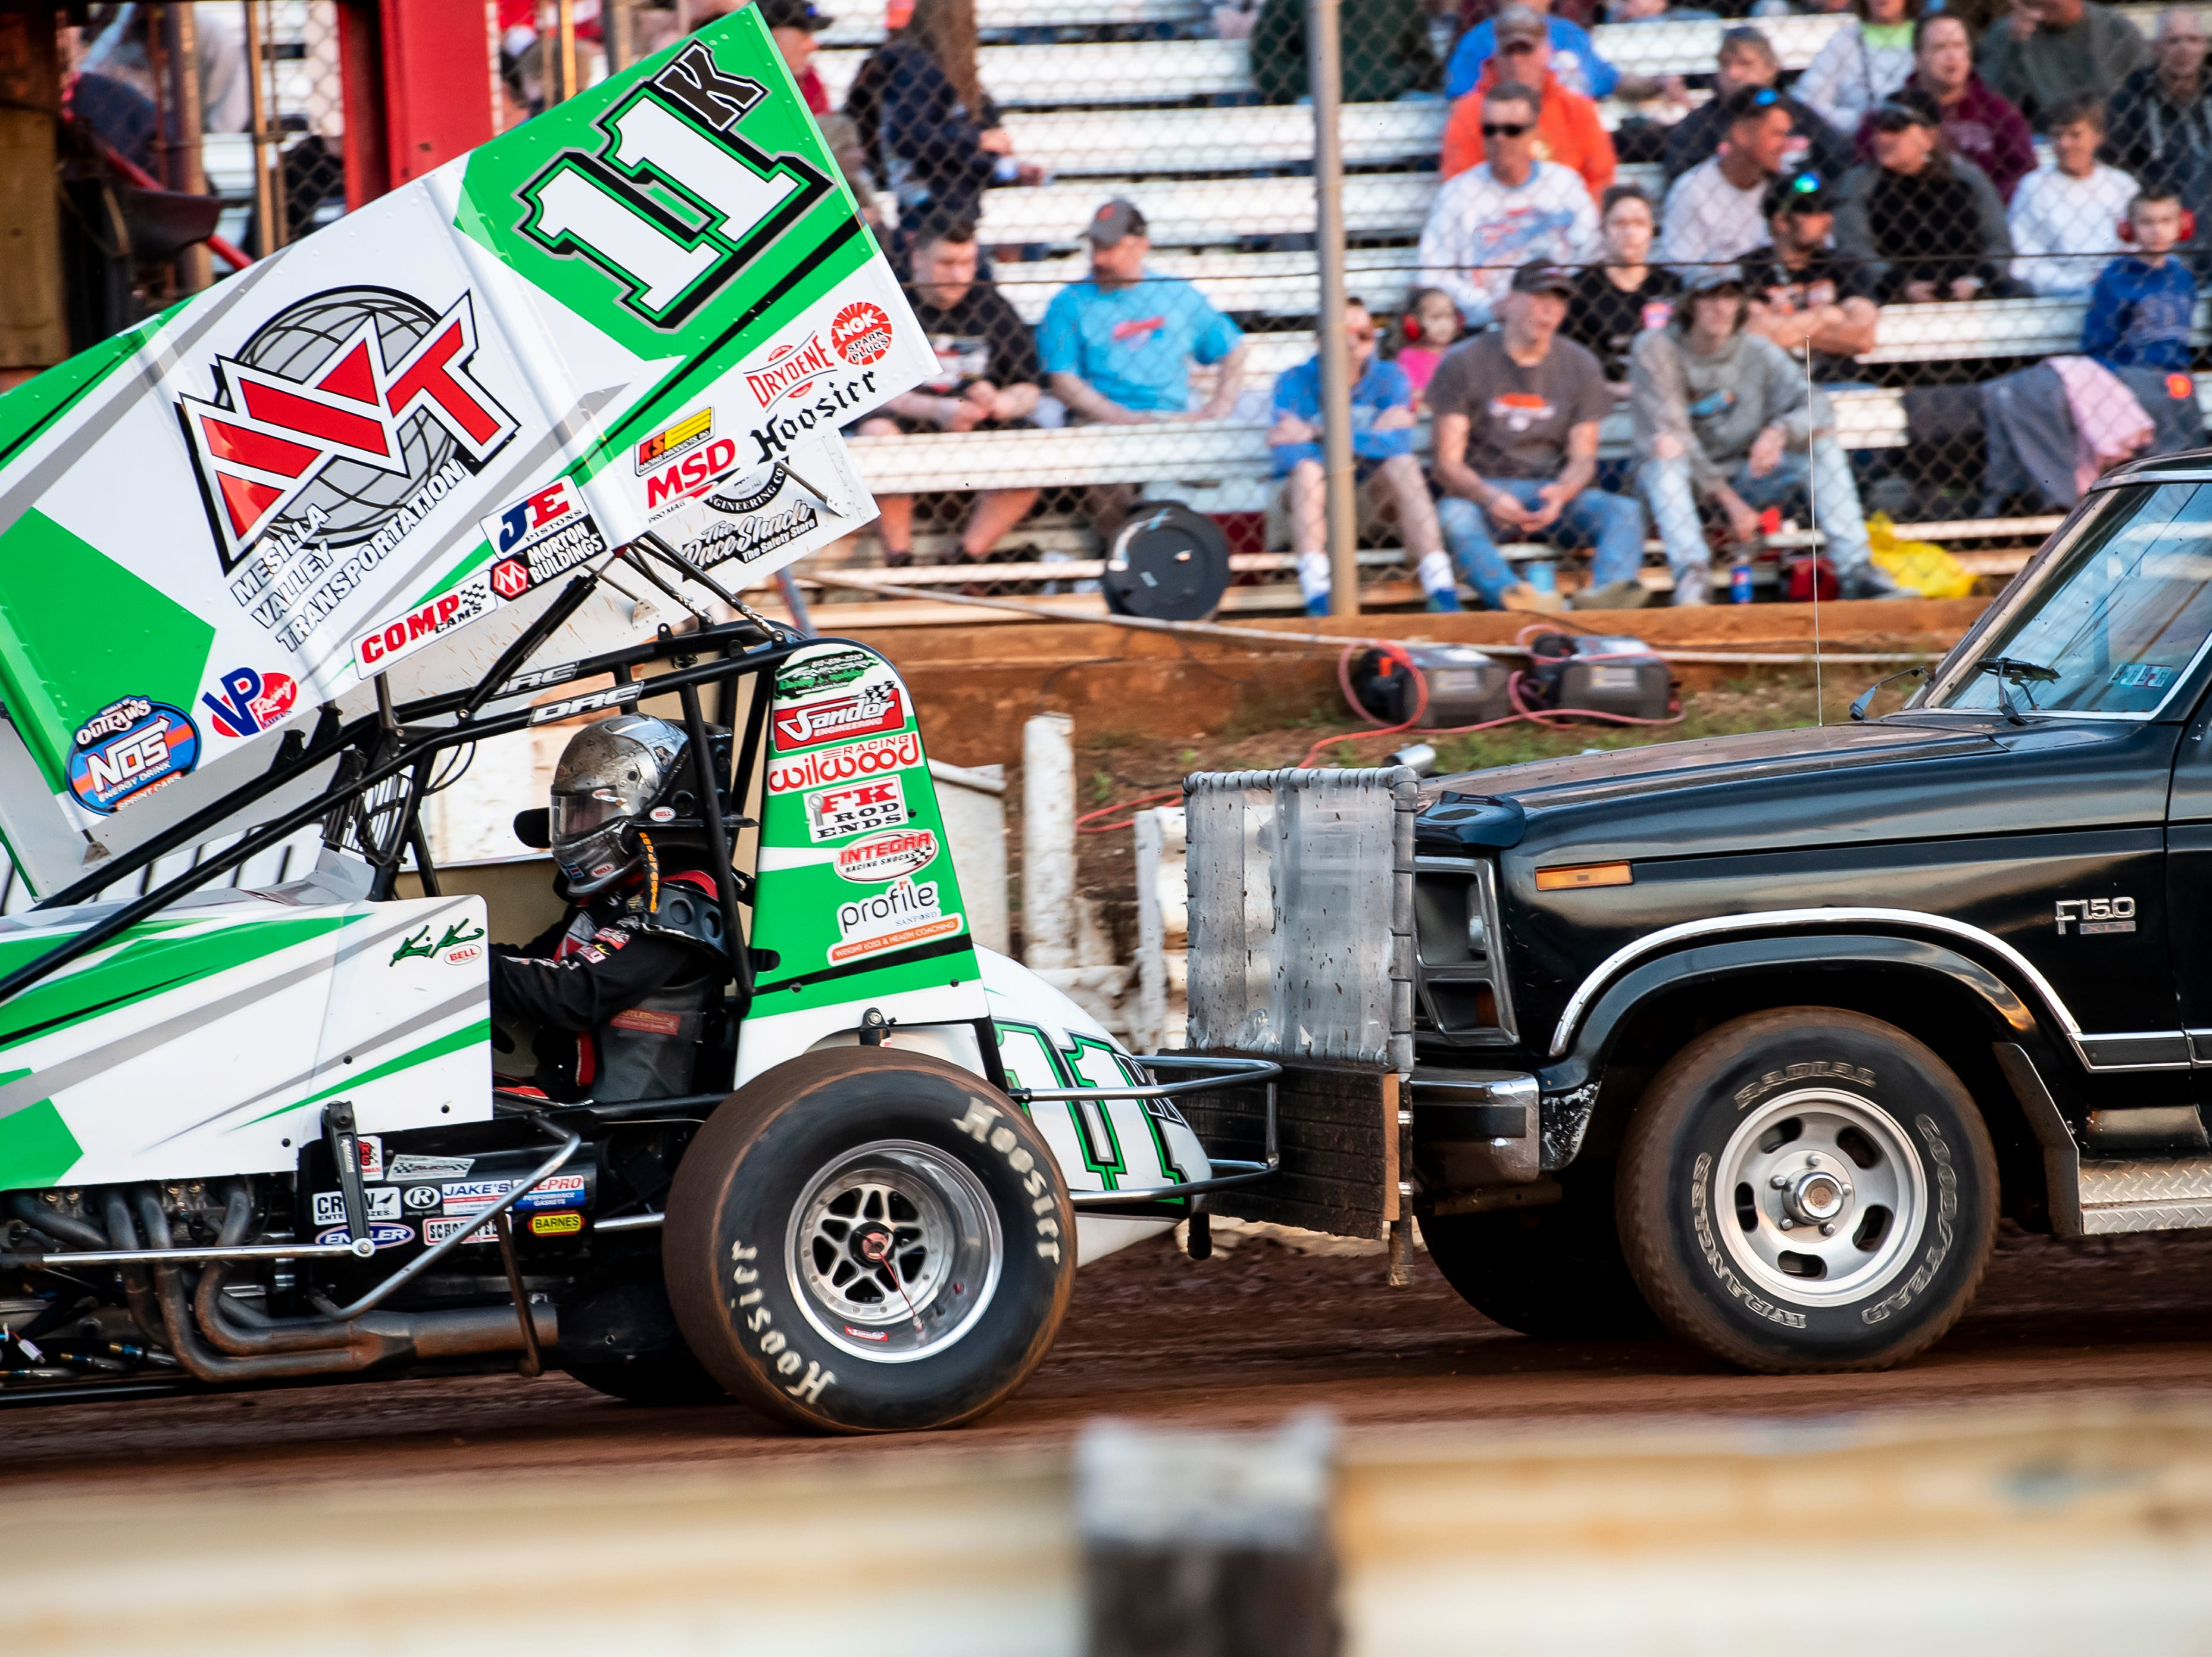 Kraig Kinster and the number 11K car get on the track for a qualifying heat during the World of Outlaws Gettysburg Clash at Lincoln Speedway in Abbottstown on Wednesday, May 15, 2019.